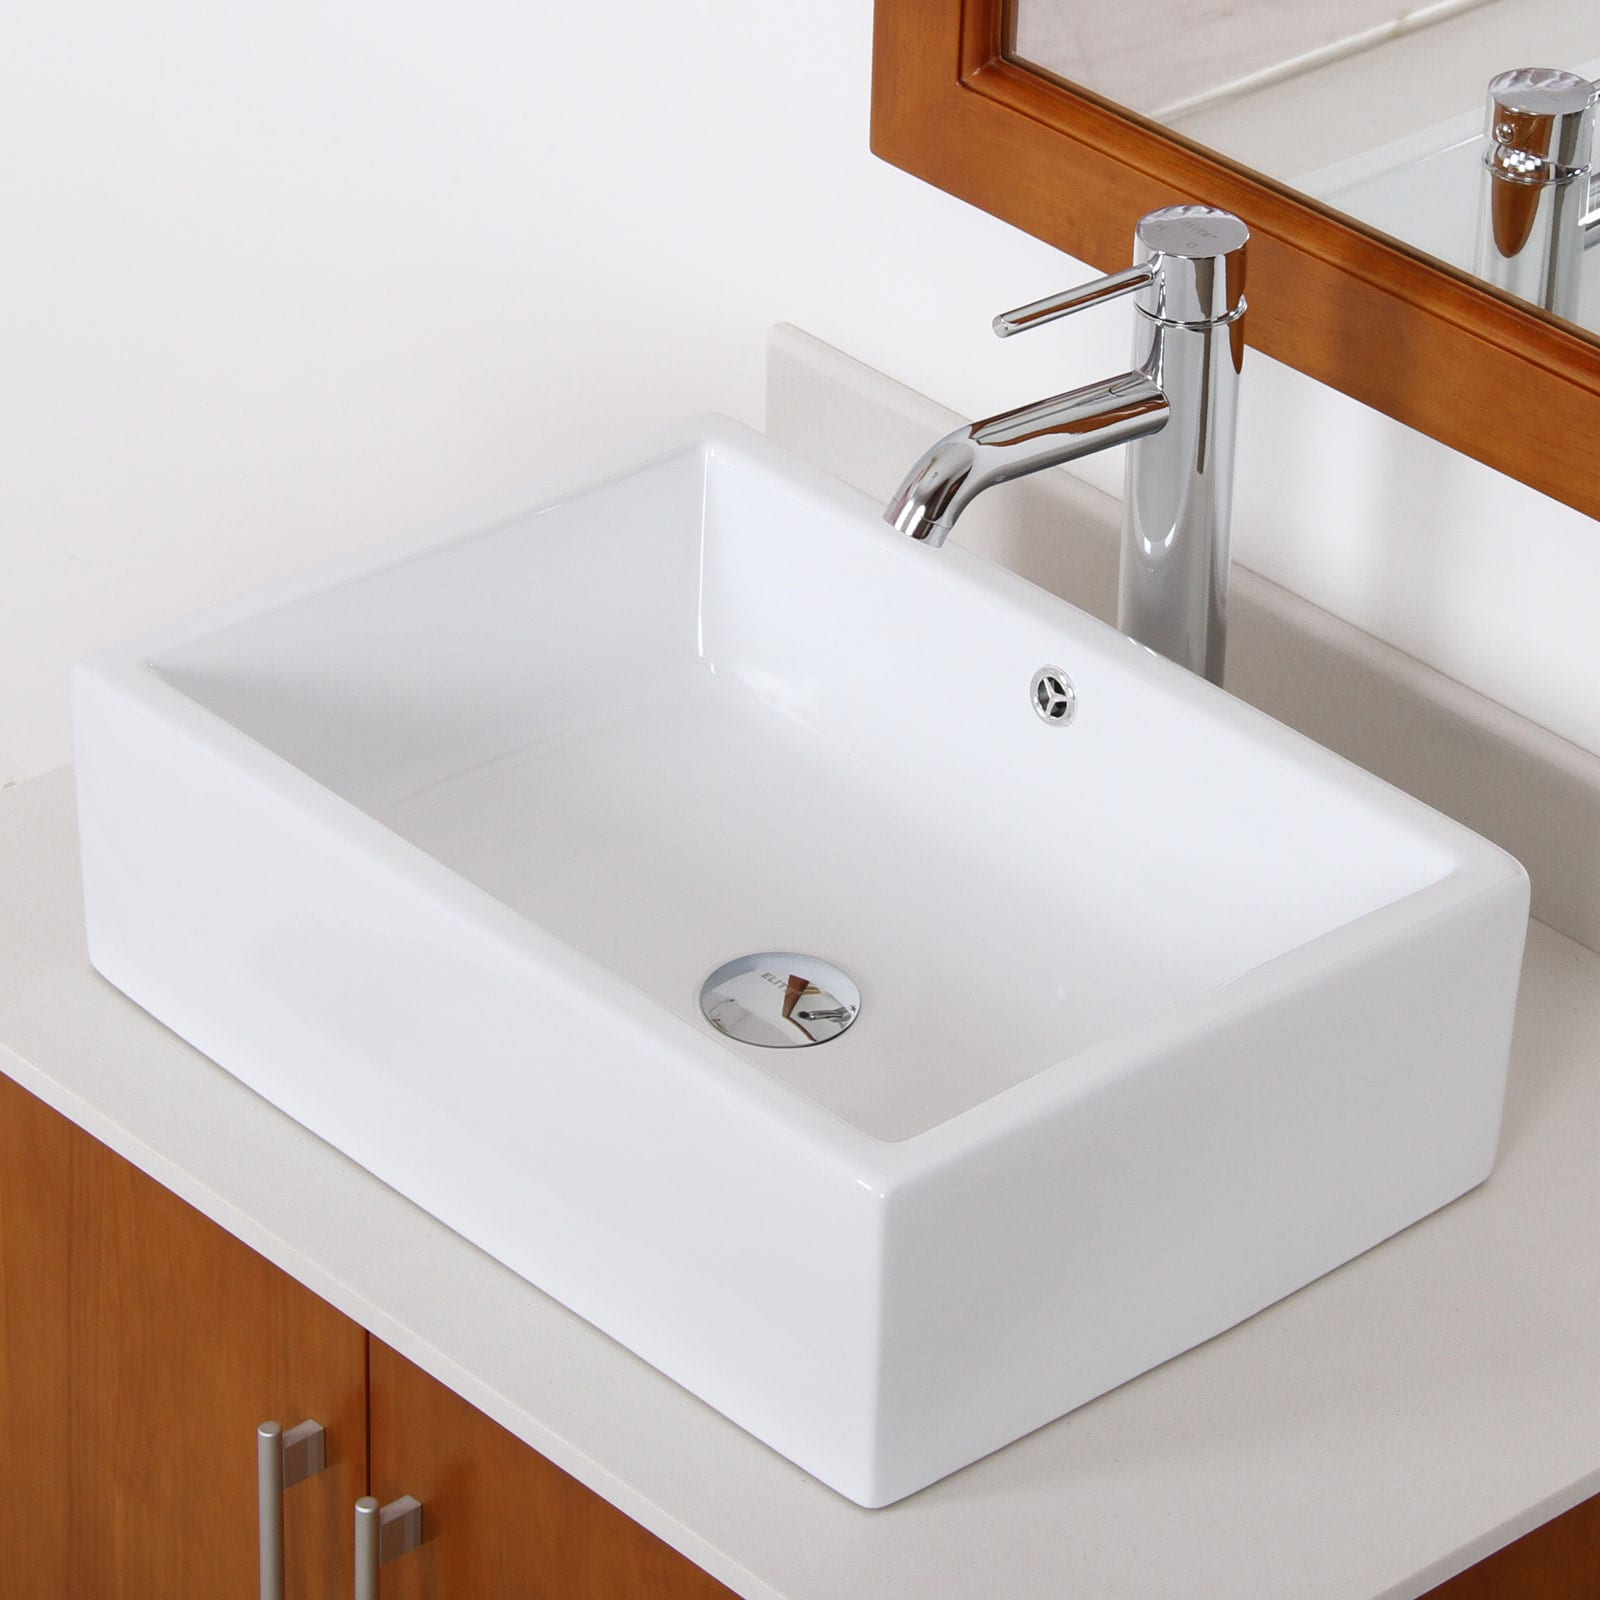 Buy faucet included bathroom sinks online at overstock our best sinks deals